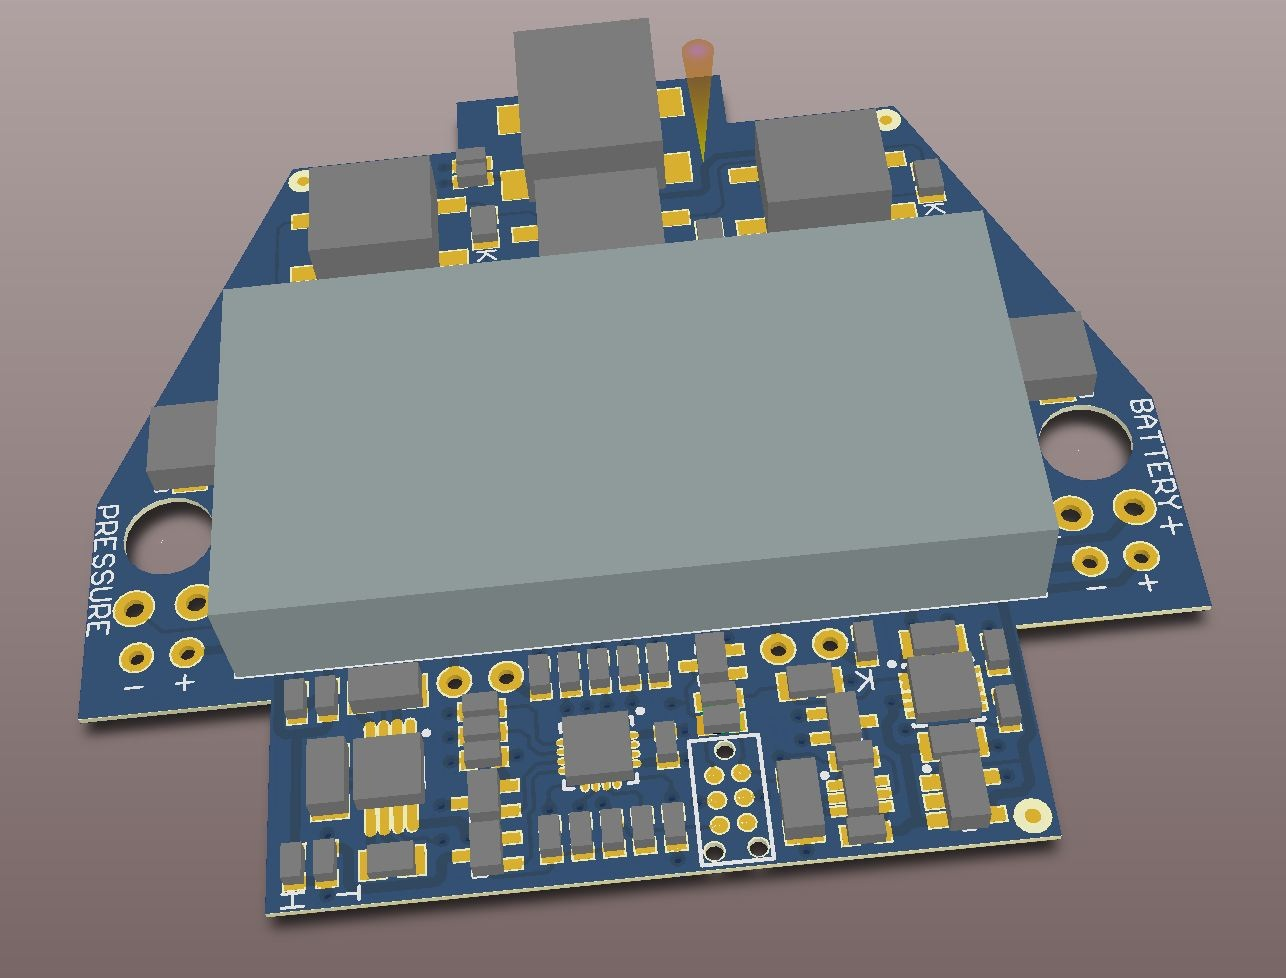 Printed Circuit Boards Contract Manufacturing Columbia Tech Rjs Electronics Inc Columbus Ohio Oh 43220 Board Layout